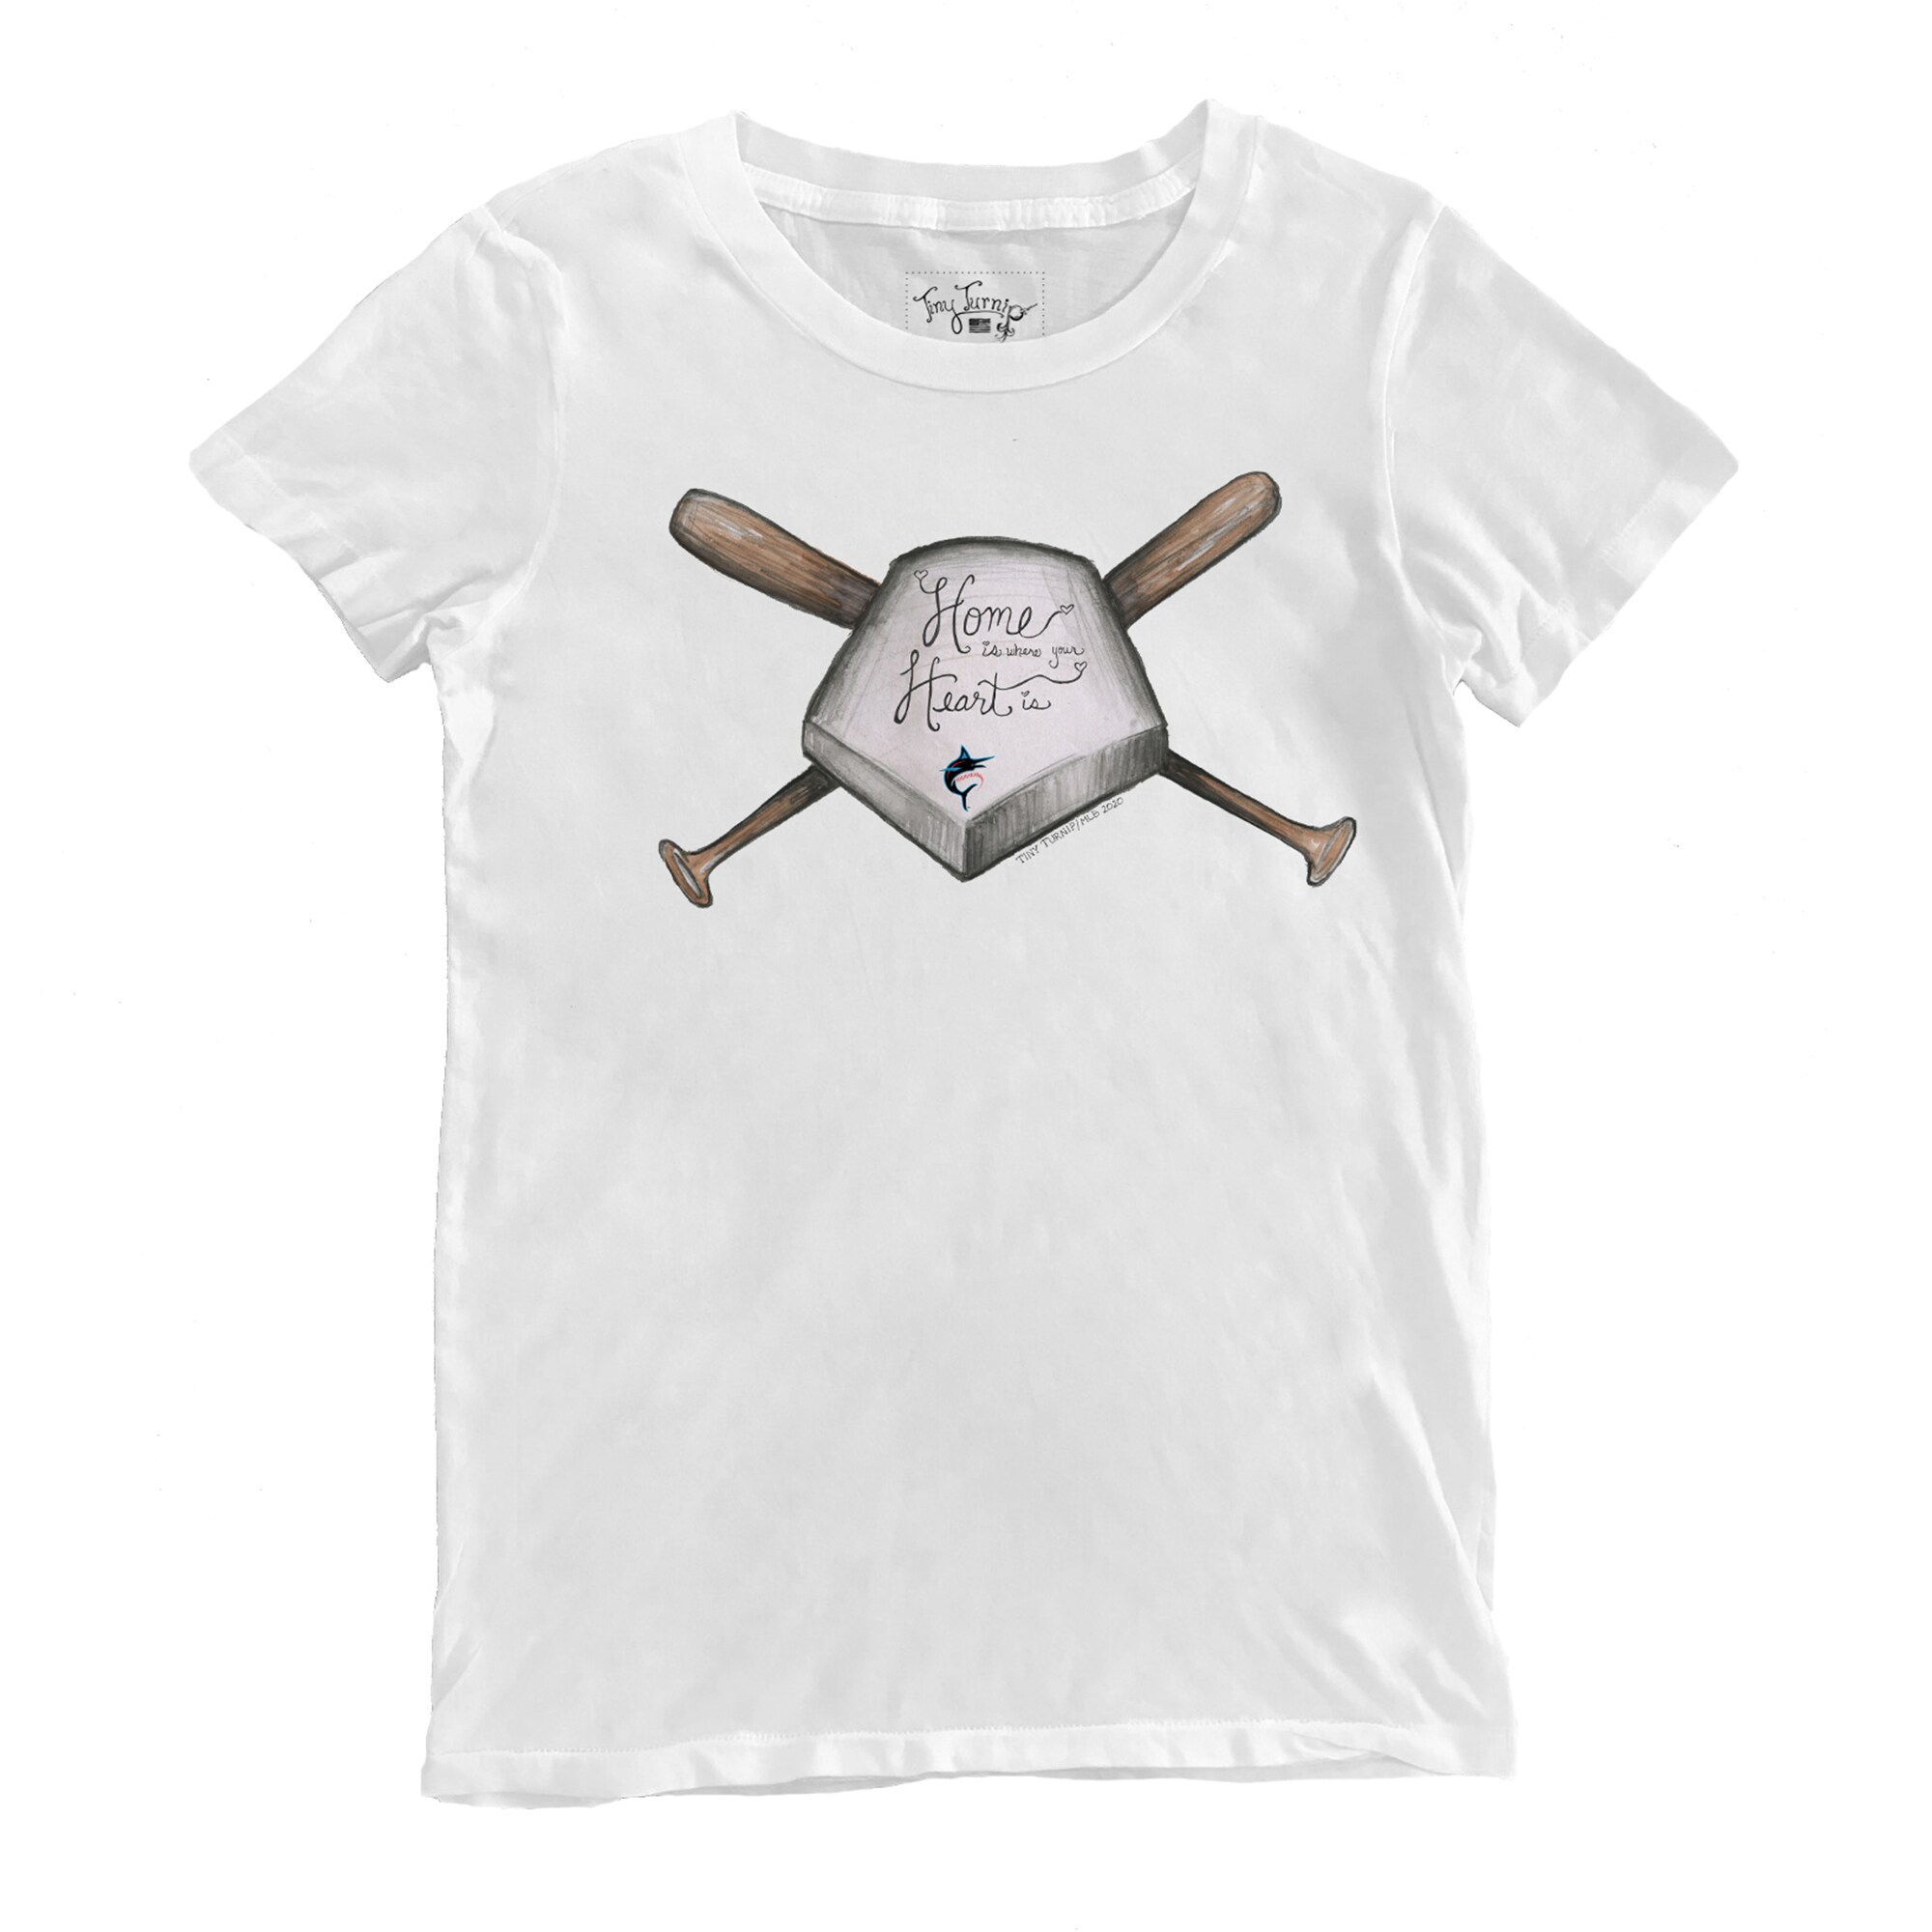 Miami Marlins Tiny Turnip Women's Home Is Where Your Heart Is T-Shirt - White